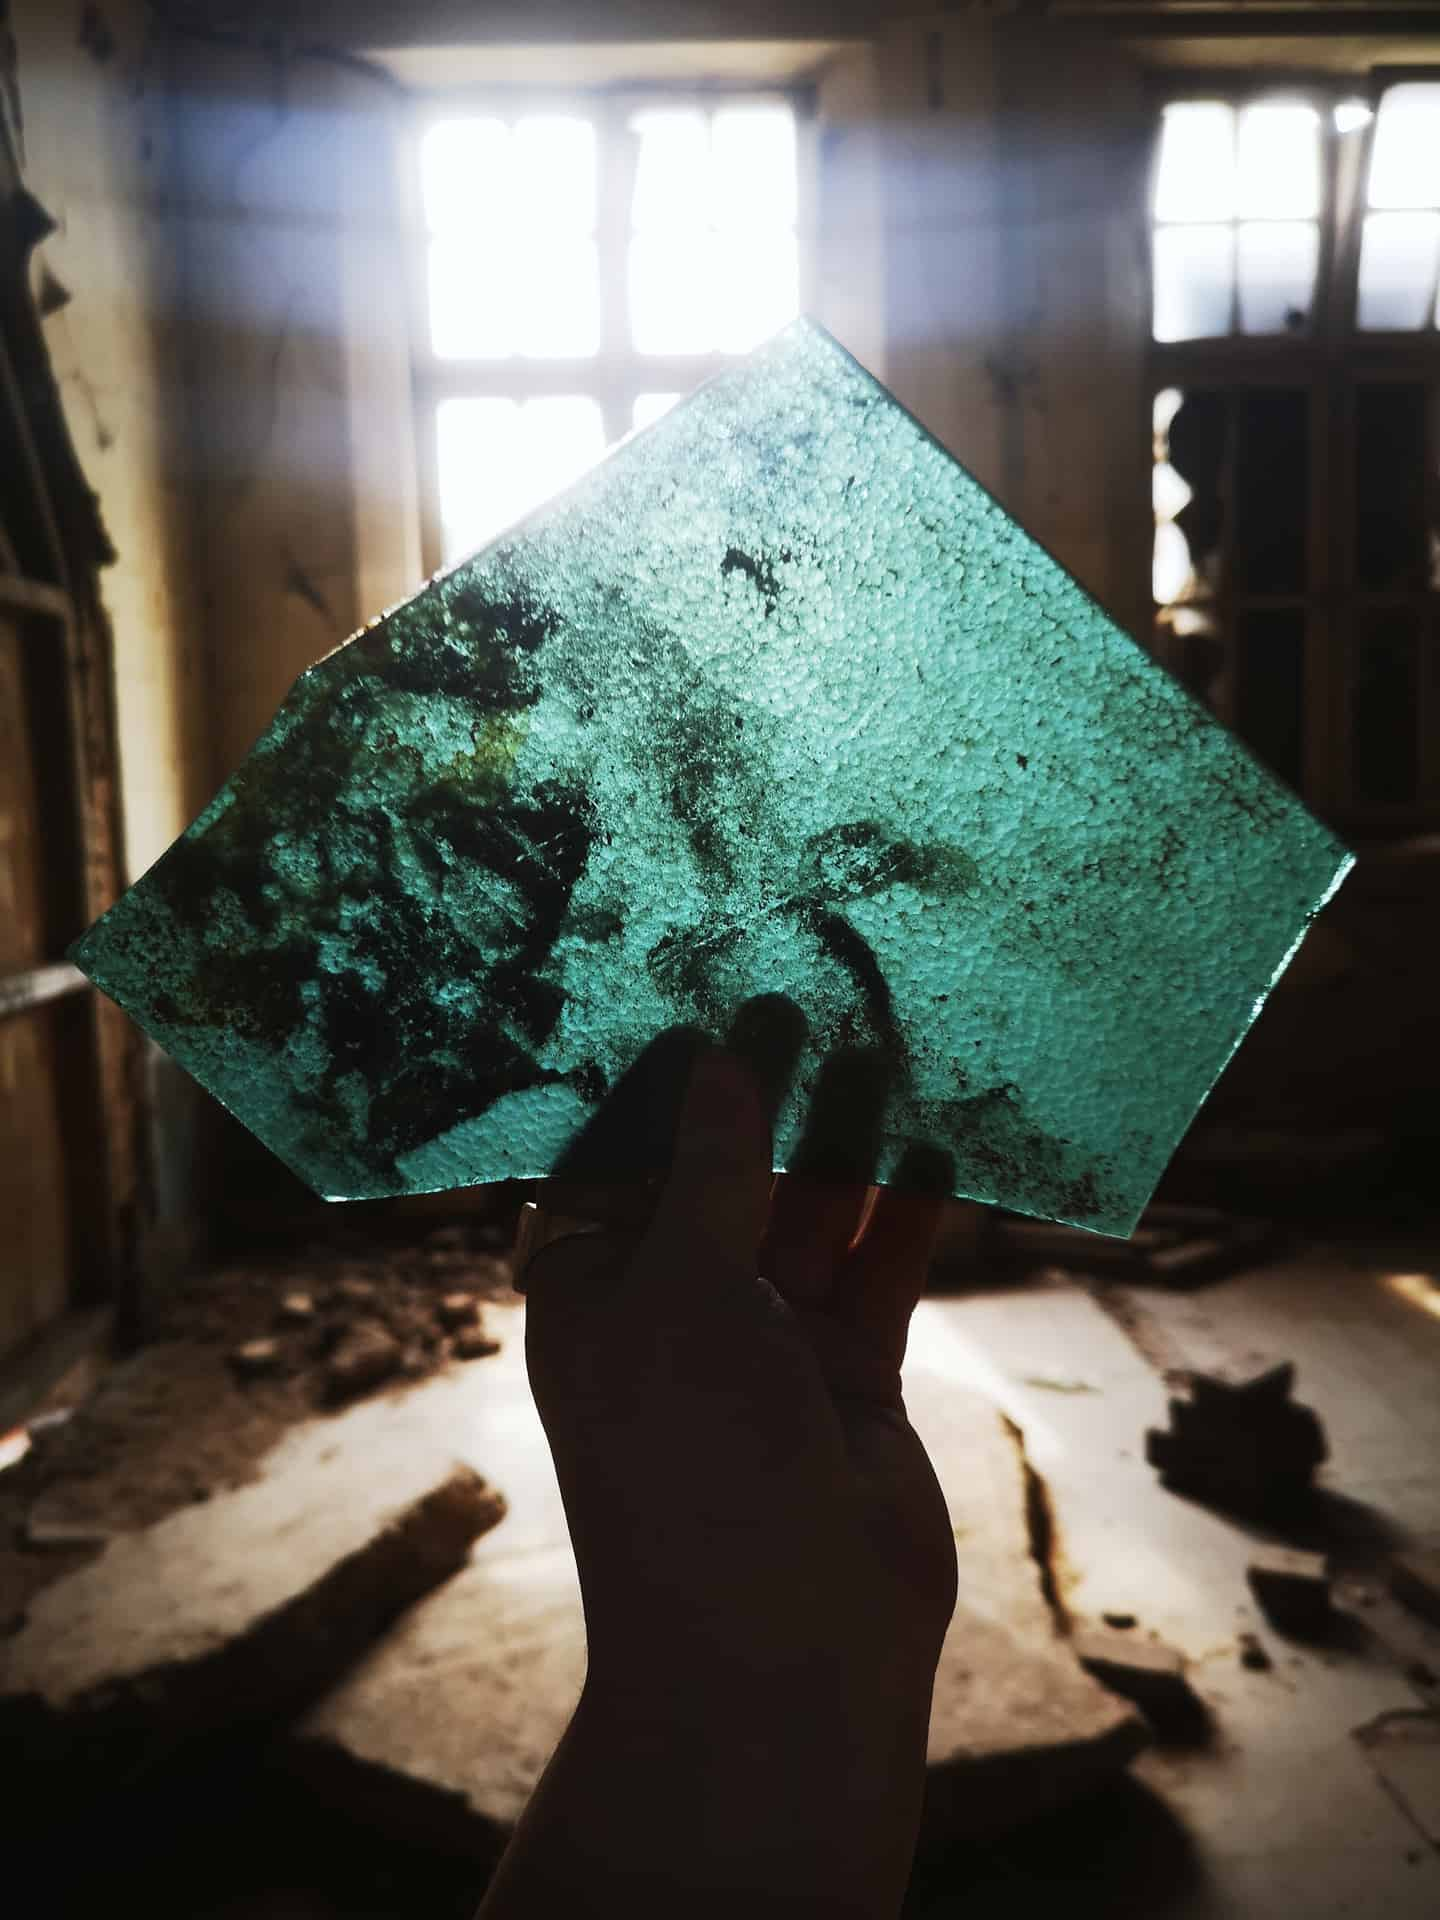 Fragmented glass found at Chance glass Heritage site, Smethwick.